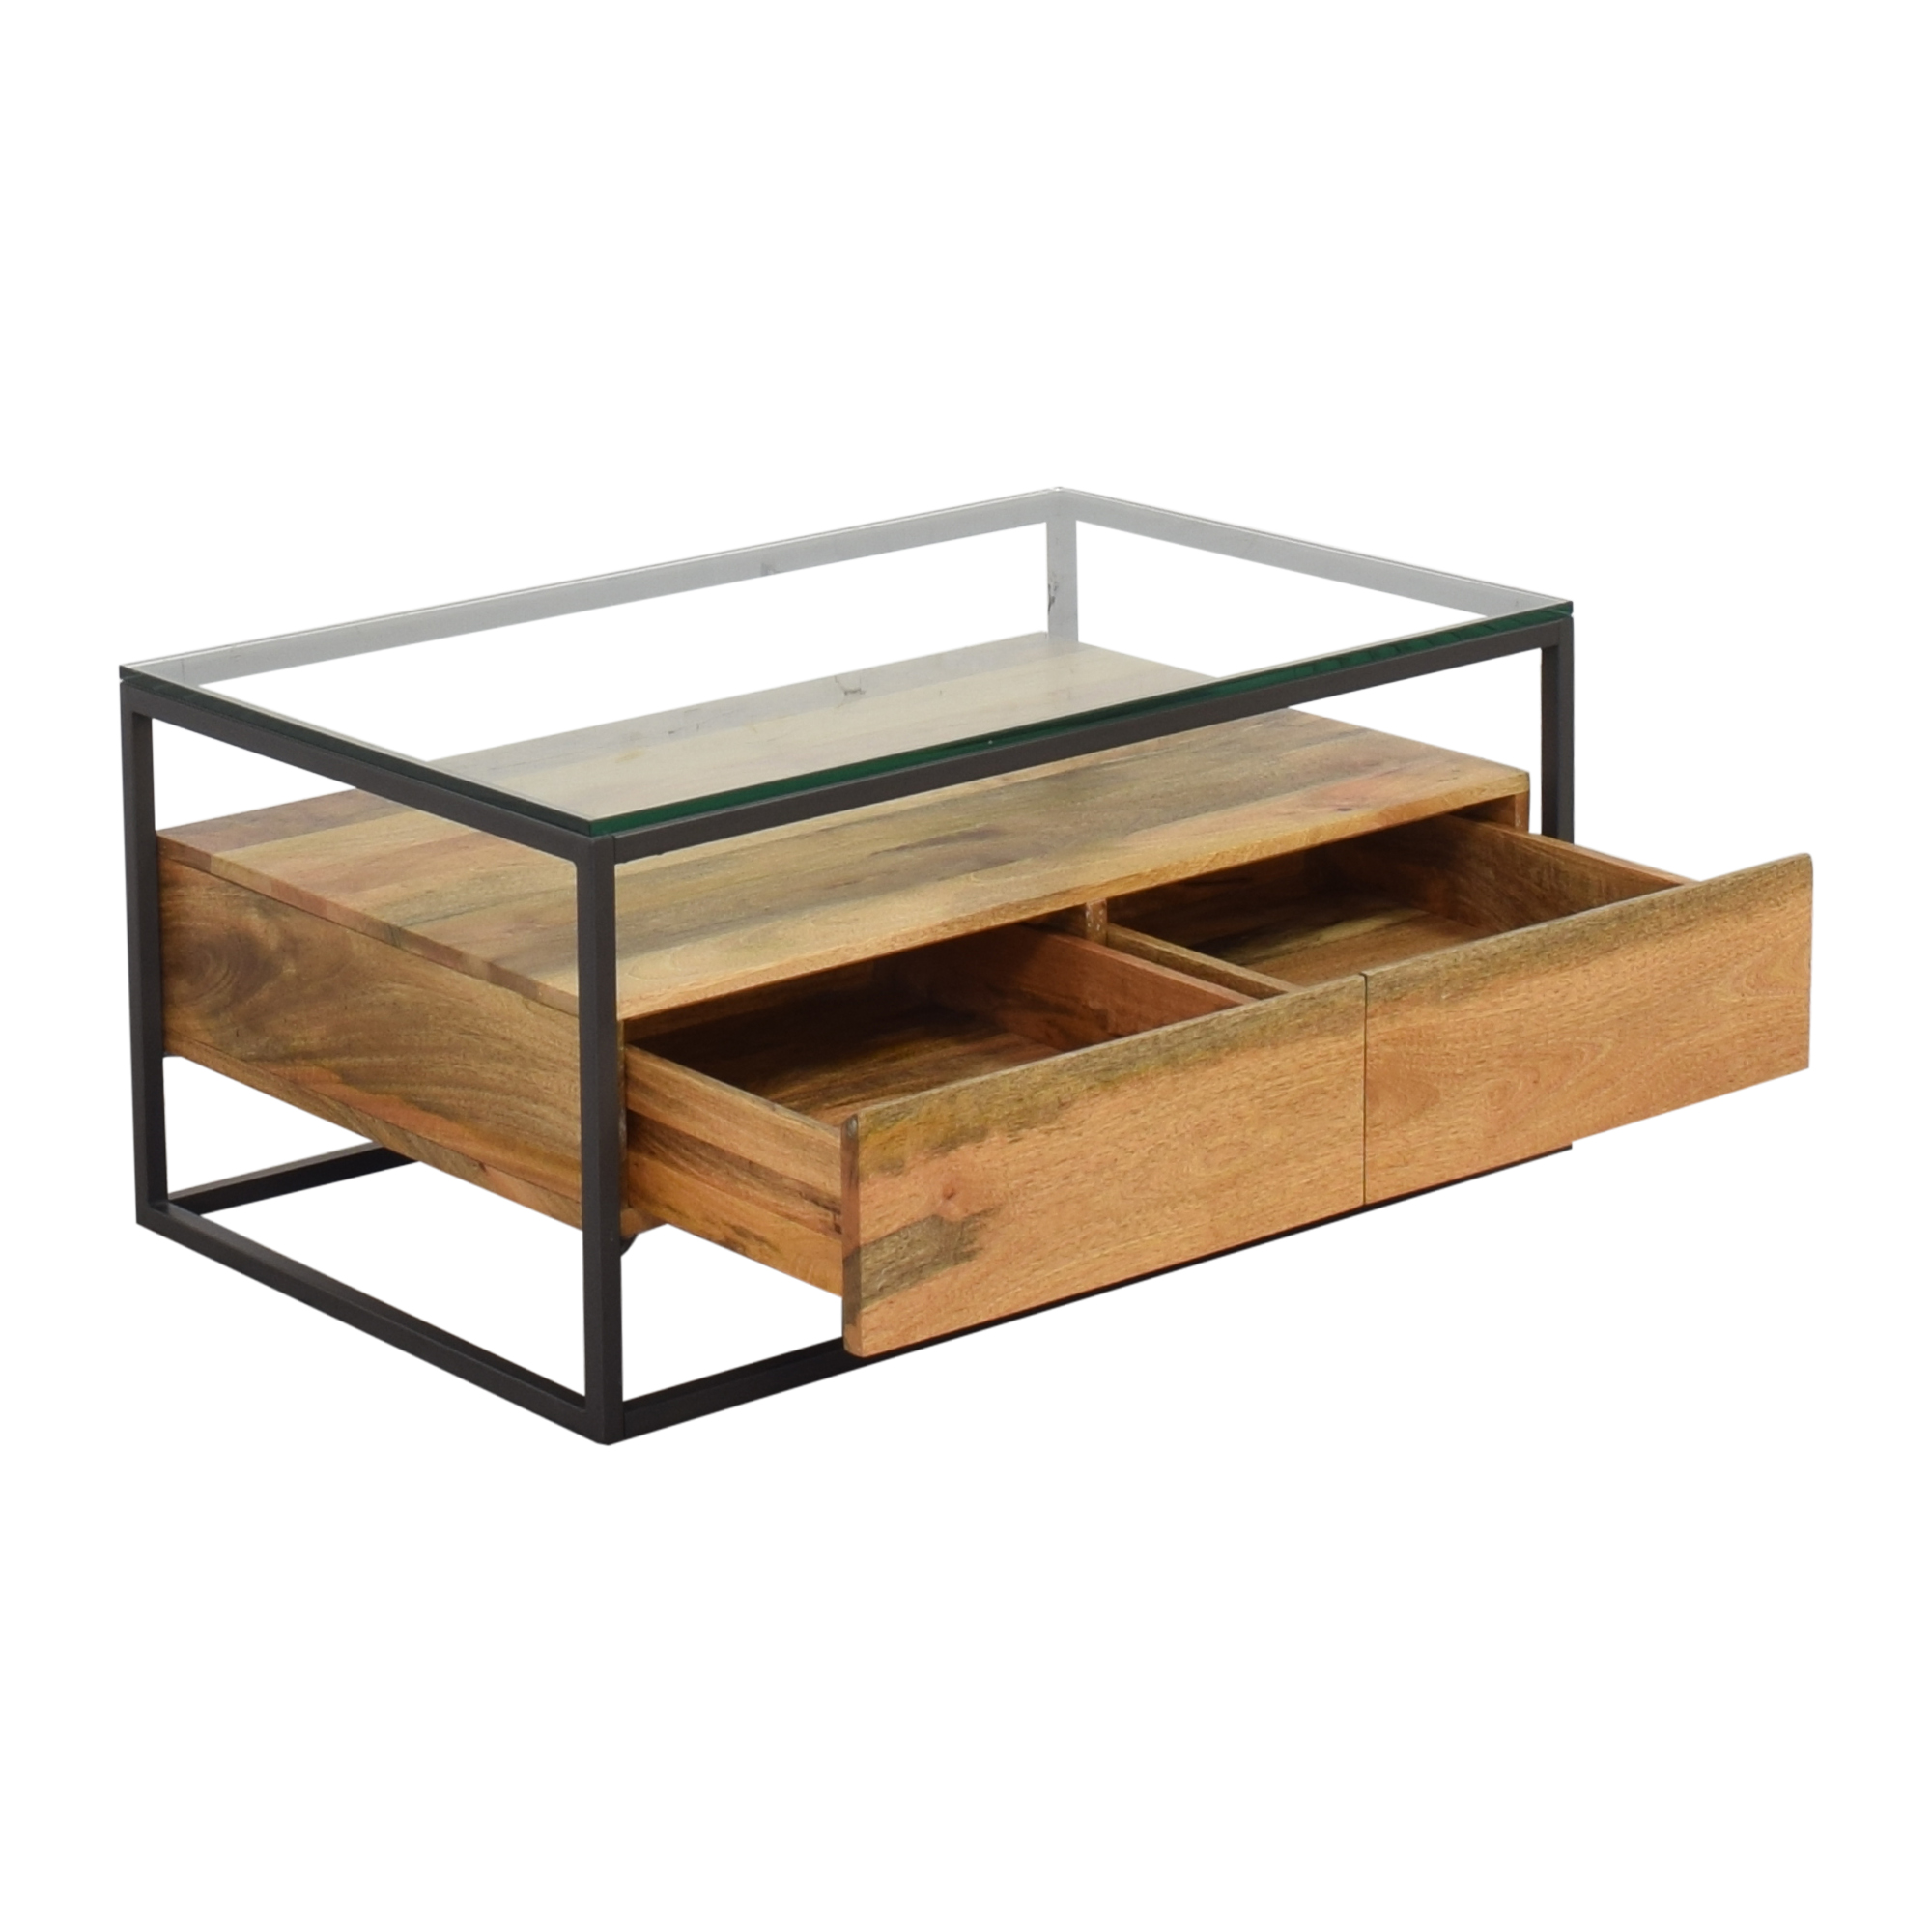 31 Off West Elm West Elm Box Frame Storage Coffee Table Tables